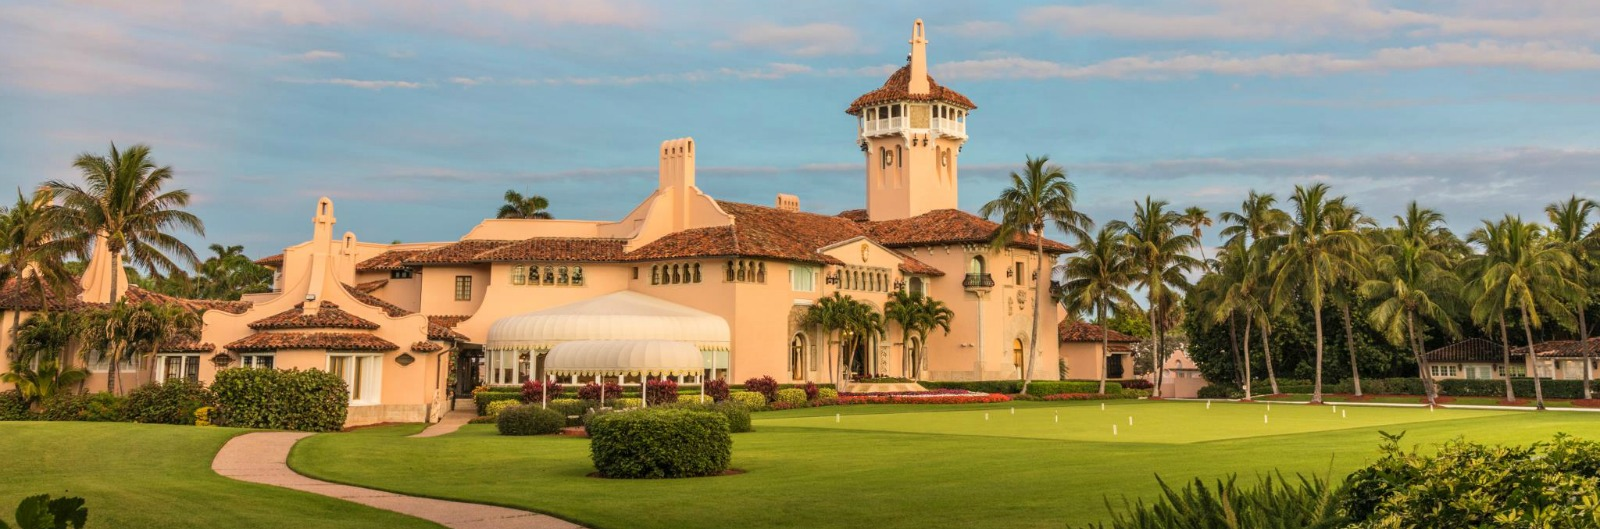 Report: Trump's Mar-a-Lago Is Highly Vulnerable To Hacking